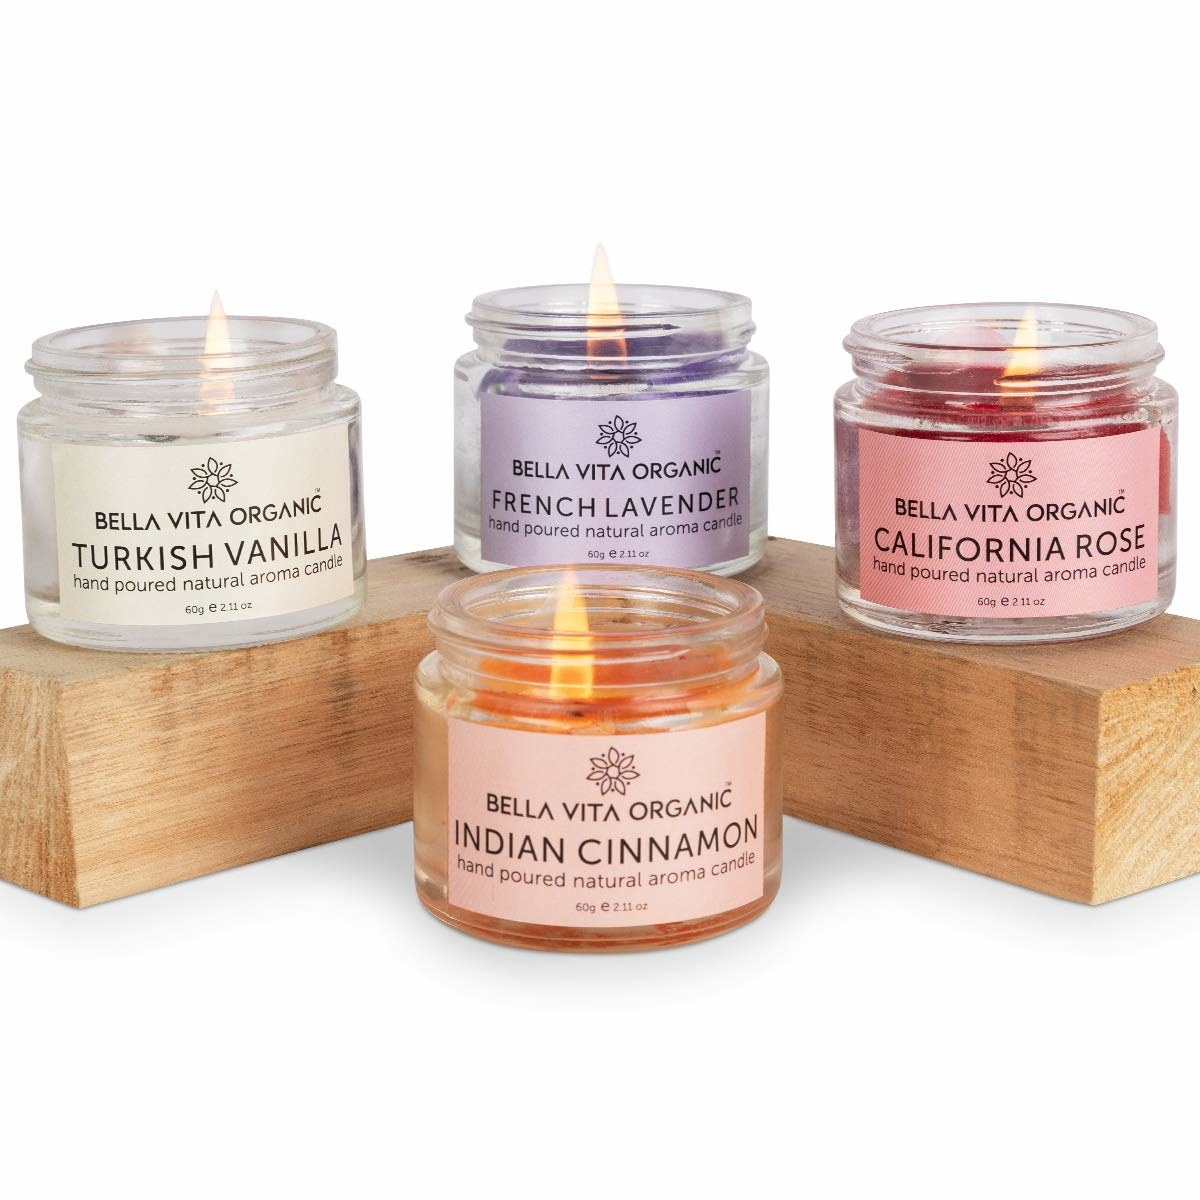 4 candle jars in vanilla, lavender, rose and cinnamon